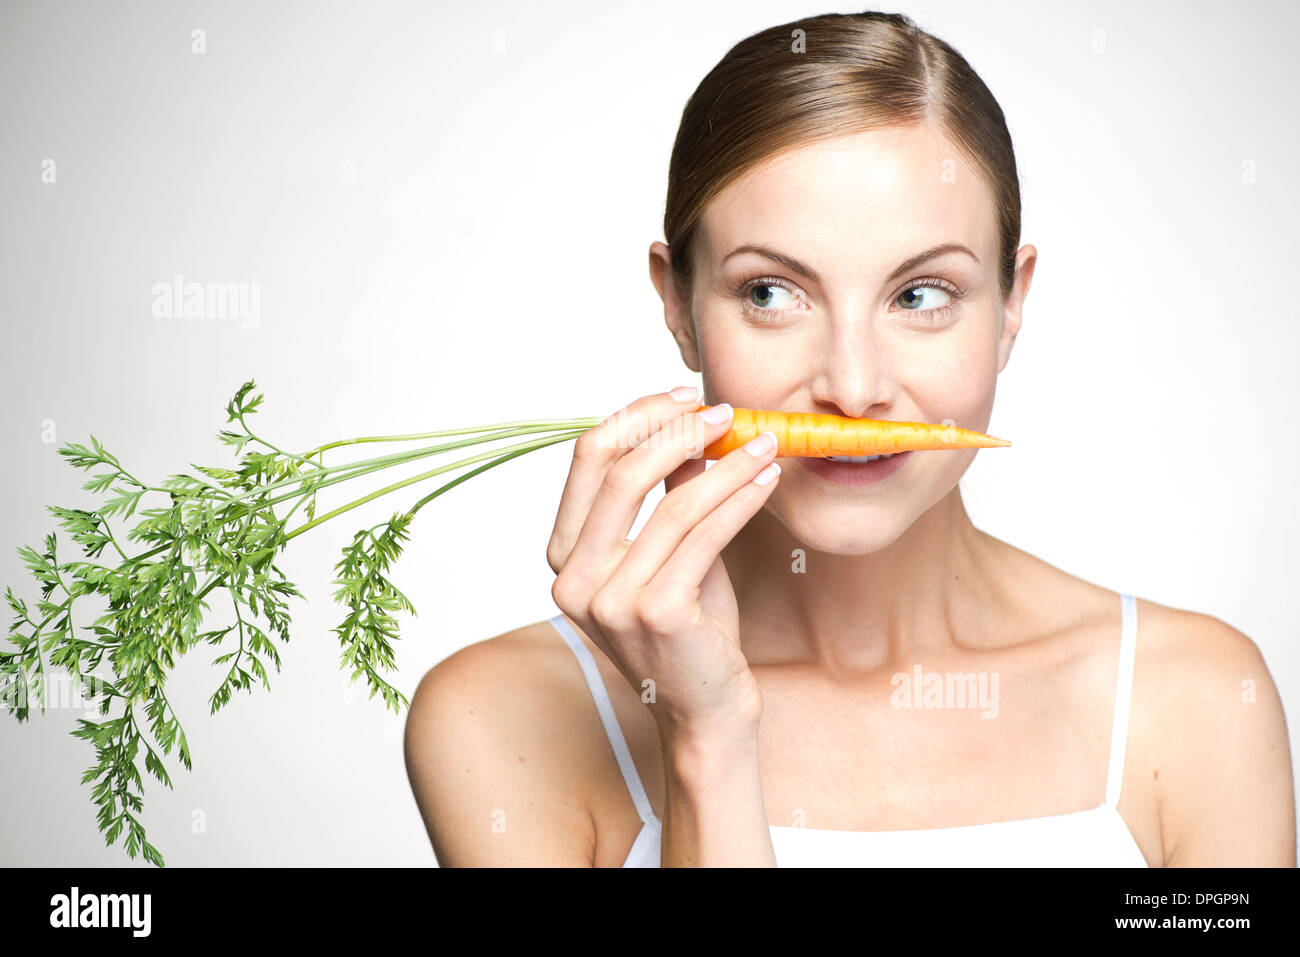 Young woman smelling carrot - Stock Image